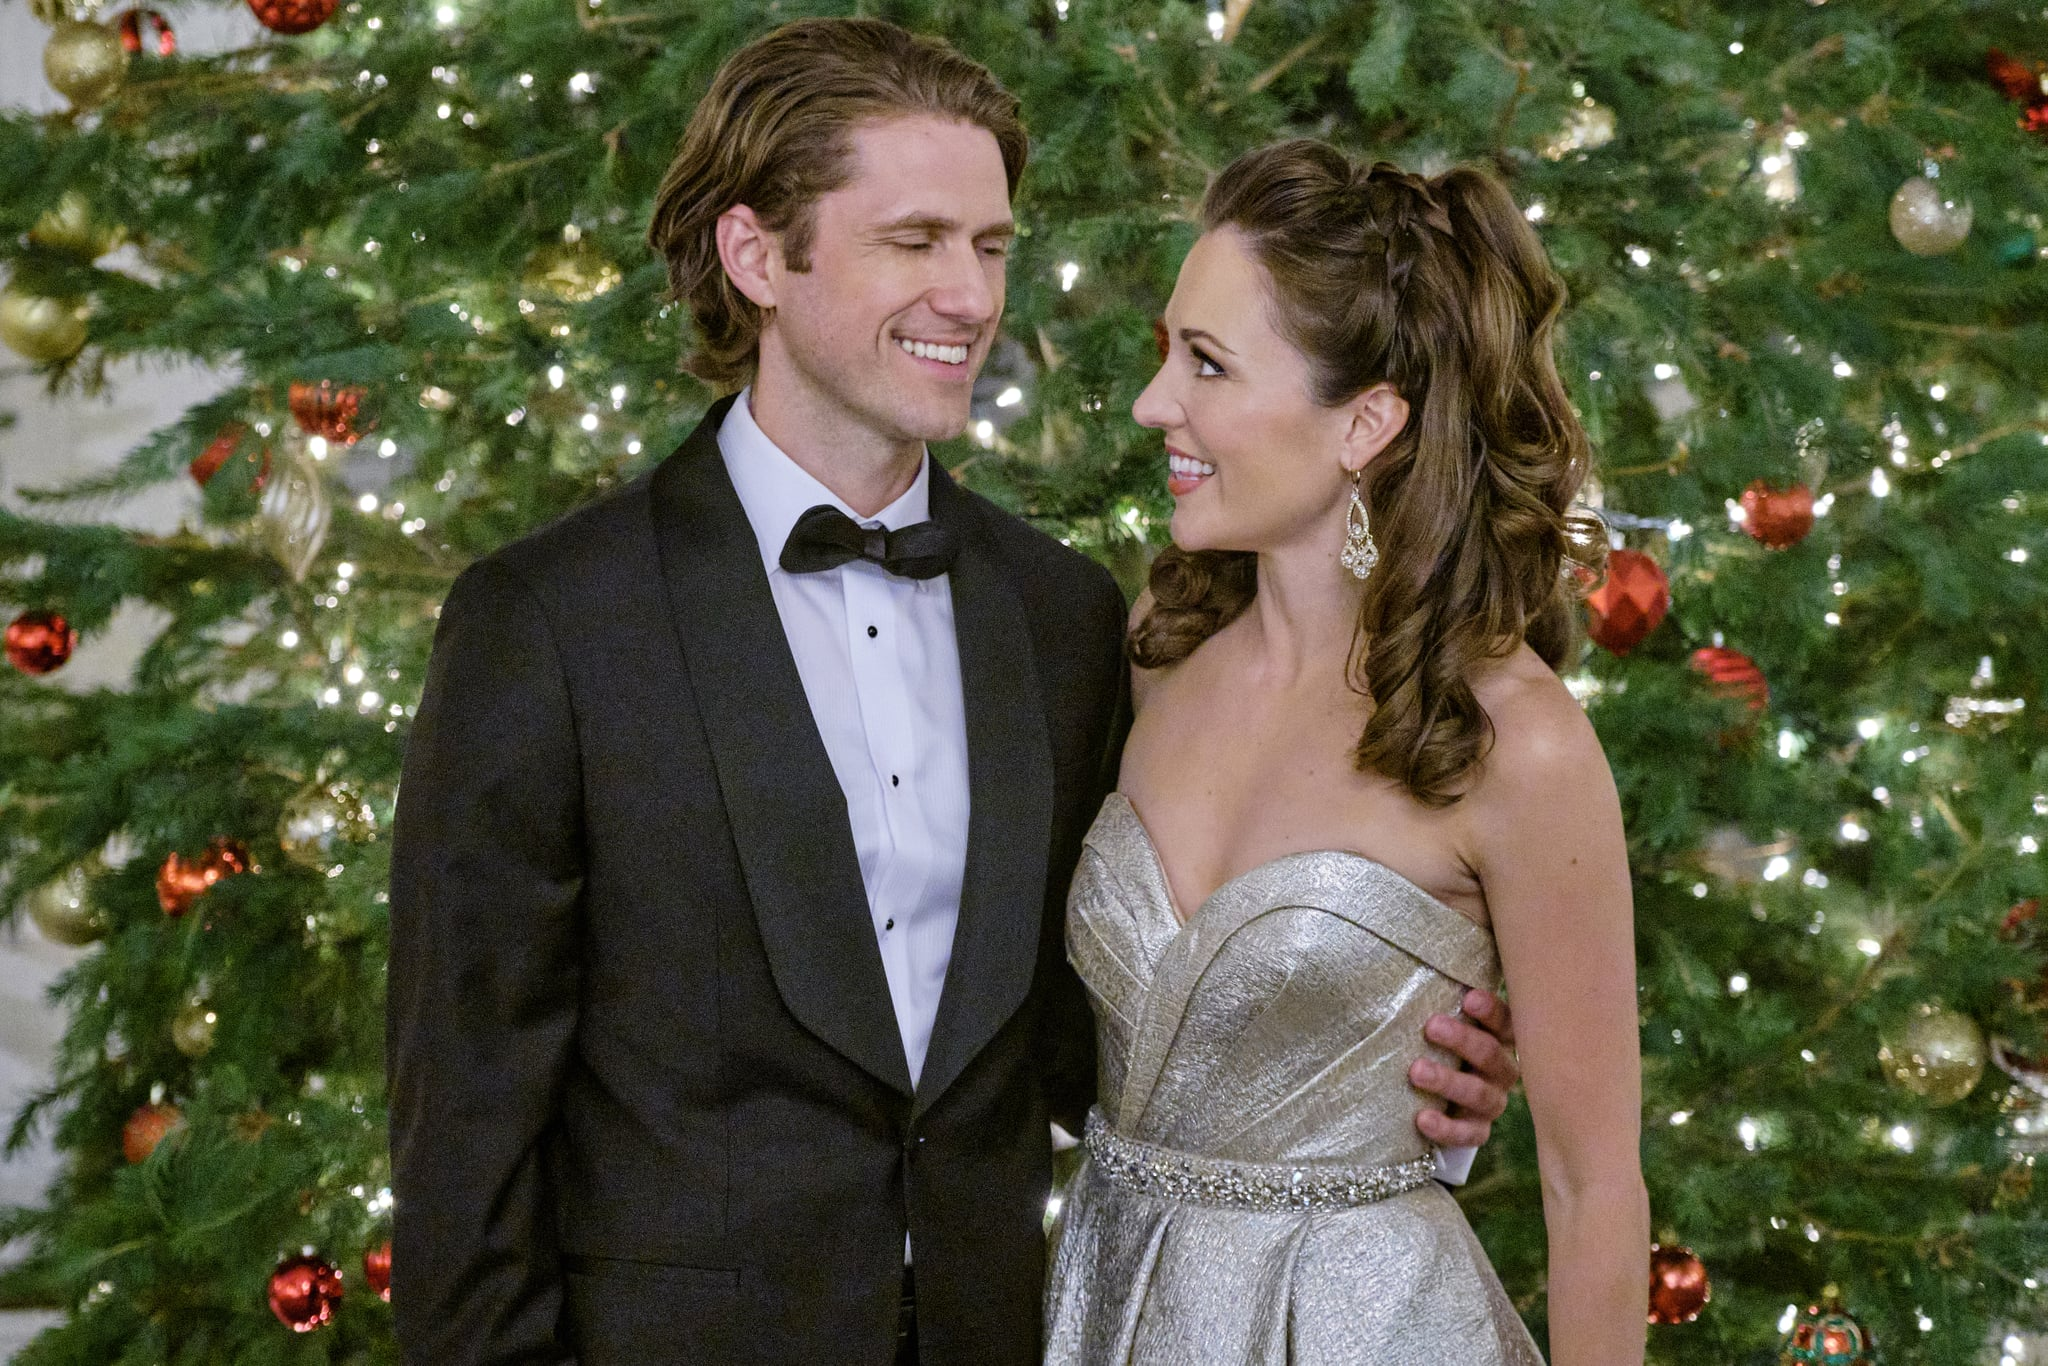 When Anna offers a stranded mother and son shelter in a blizzard, she learns that they are the Royal Family of Galwick.  Anna shows the Prince how they do Christmas in her hometown of Kentsbury, Connecticut encouraging him to open his heart and be true to himself.  Photo: Aaron tveit, Laura Osnes   Credit: ©2020 Crown Media United States LLC/Photographer: Robert Clark